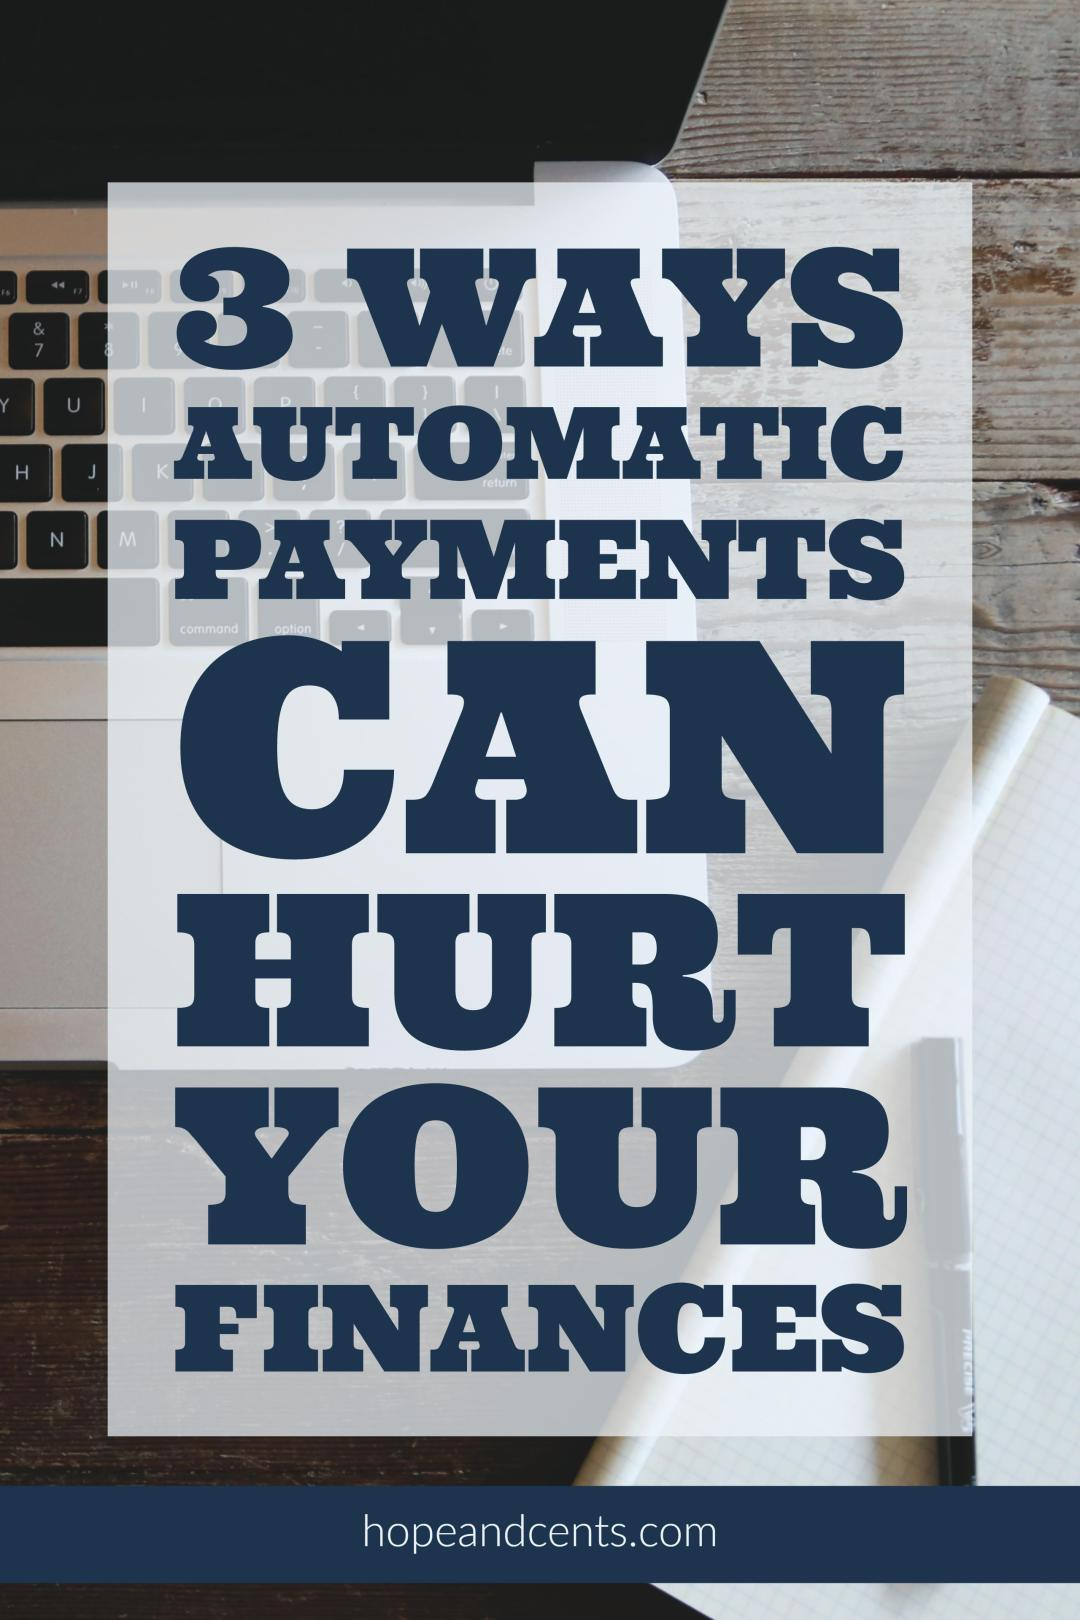 Automatic payments have transformed the way we bank, pay bills, and handle other financial tasks. But we should be aware of the cons.